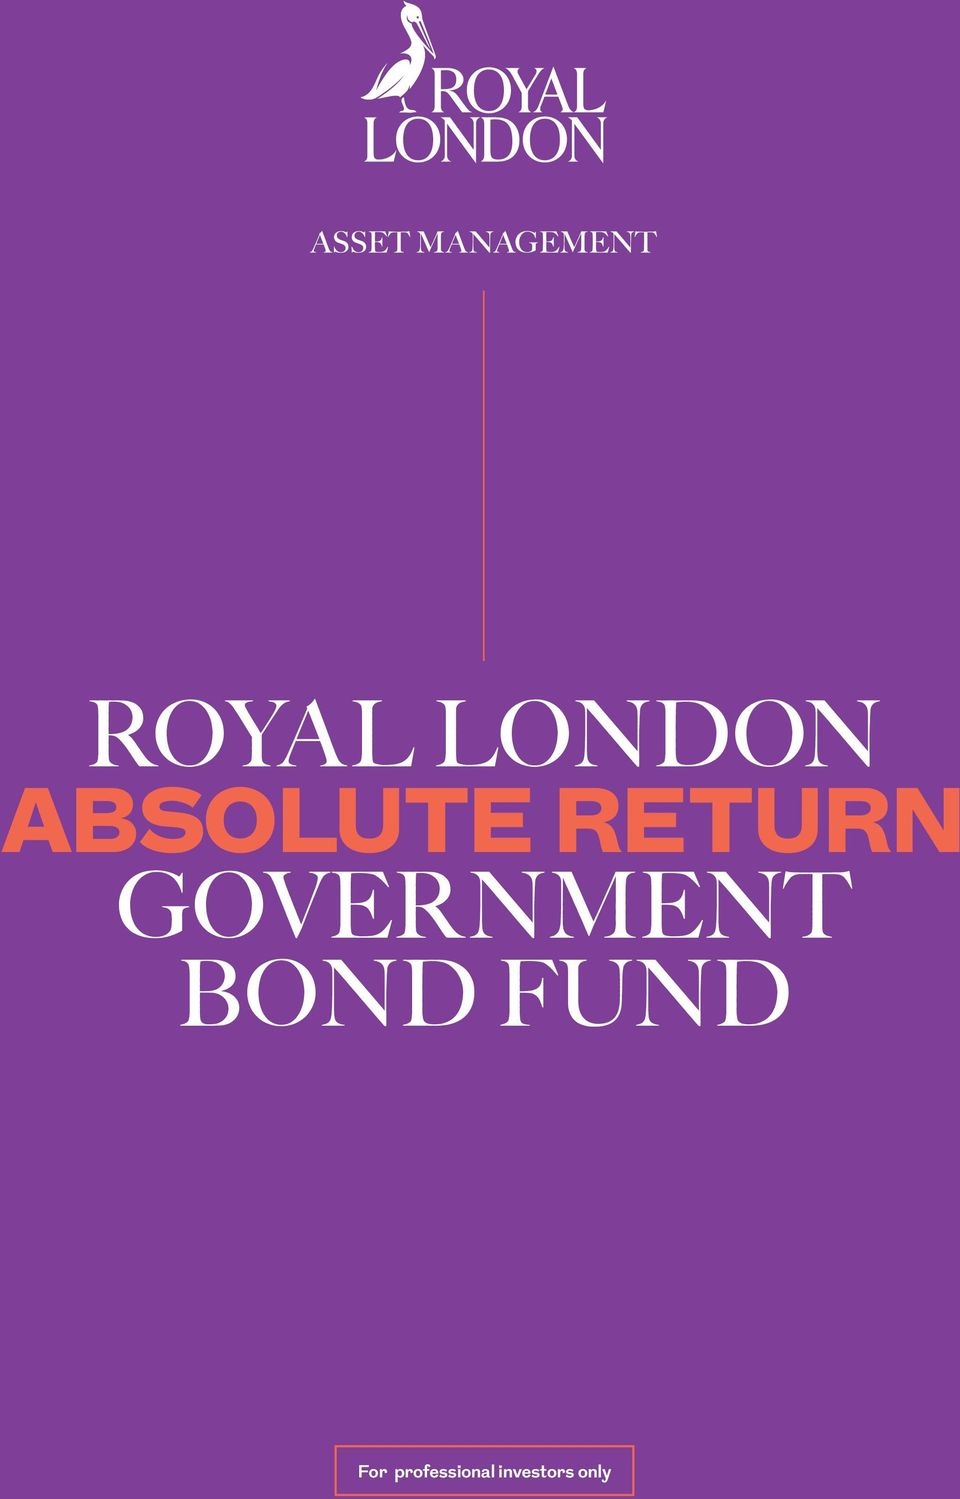 GOVERNMENT BOND FUND